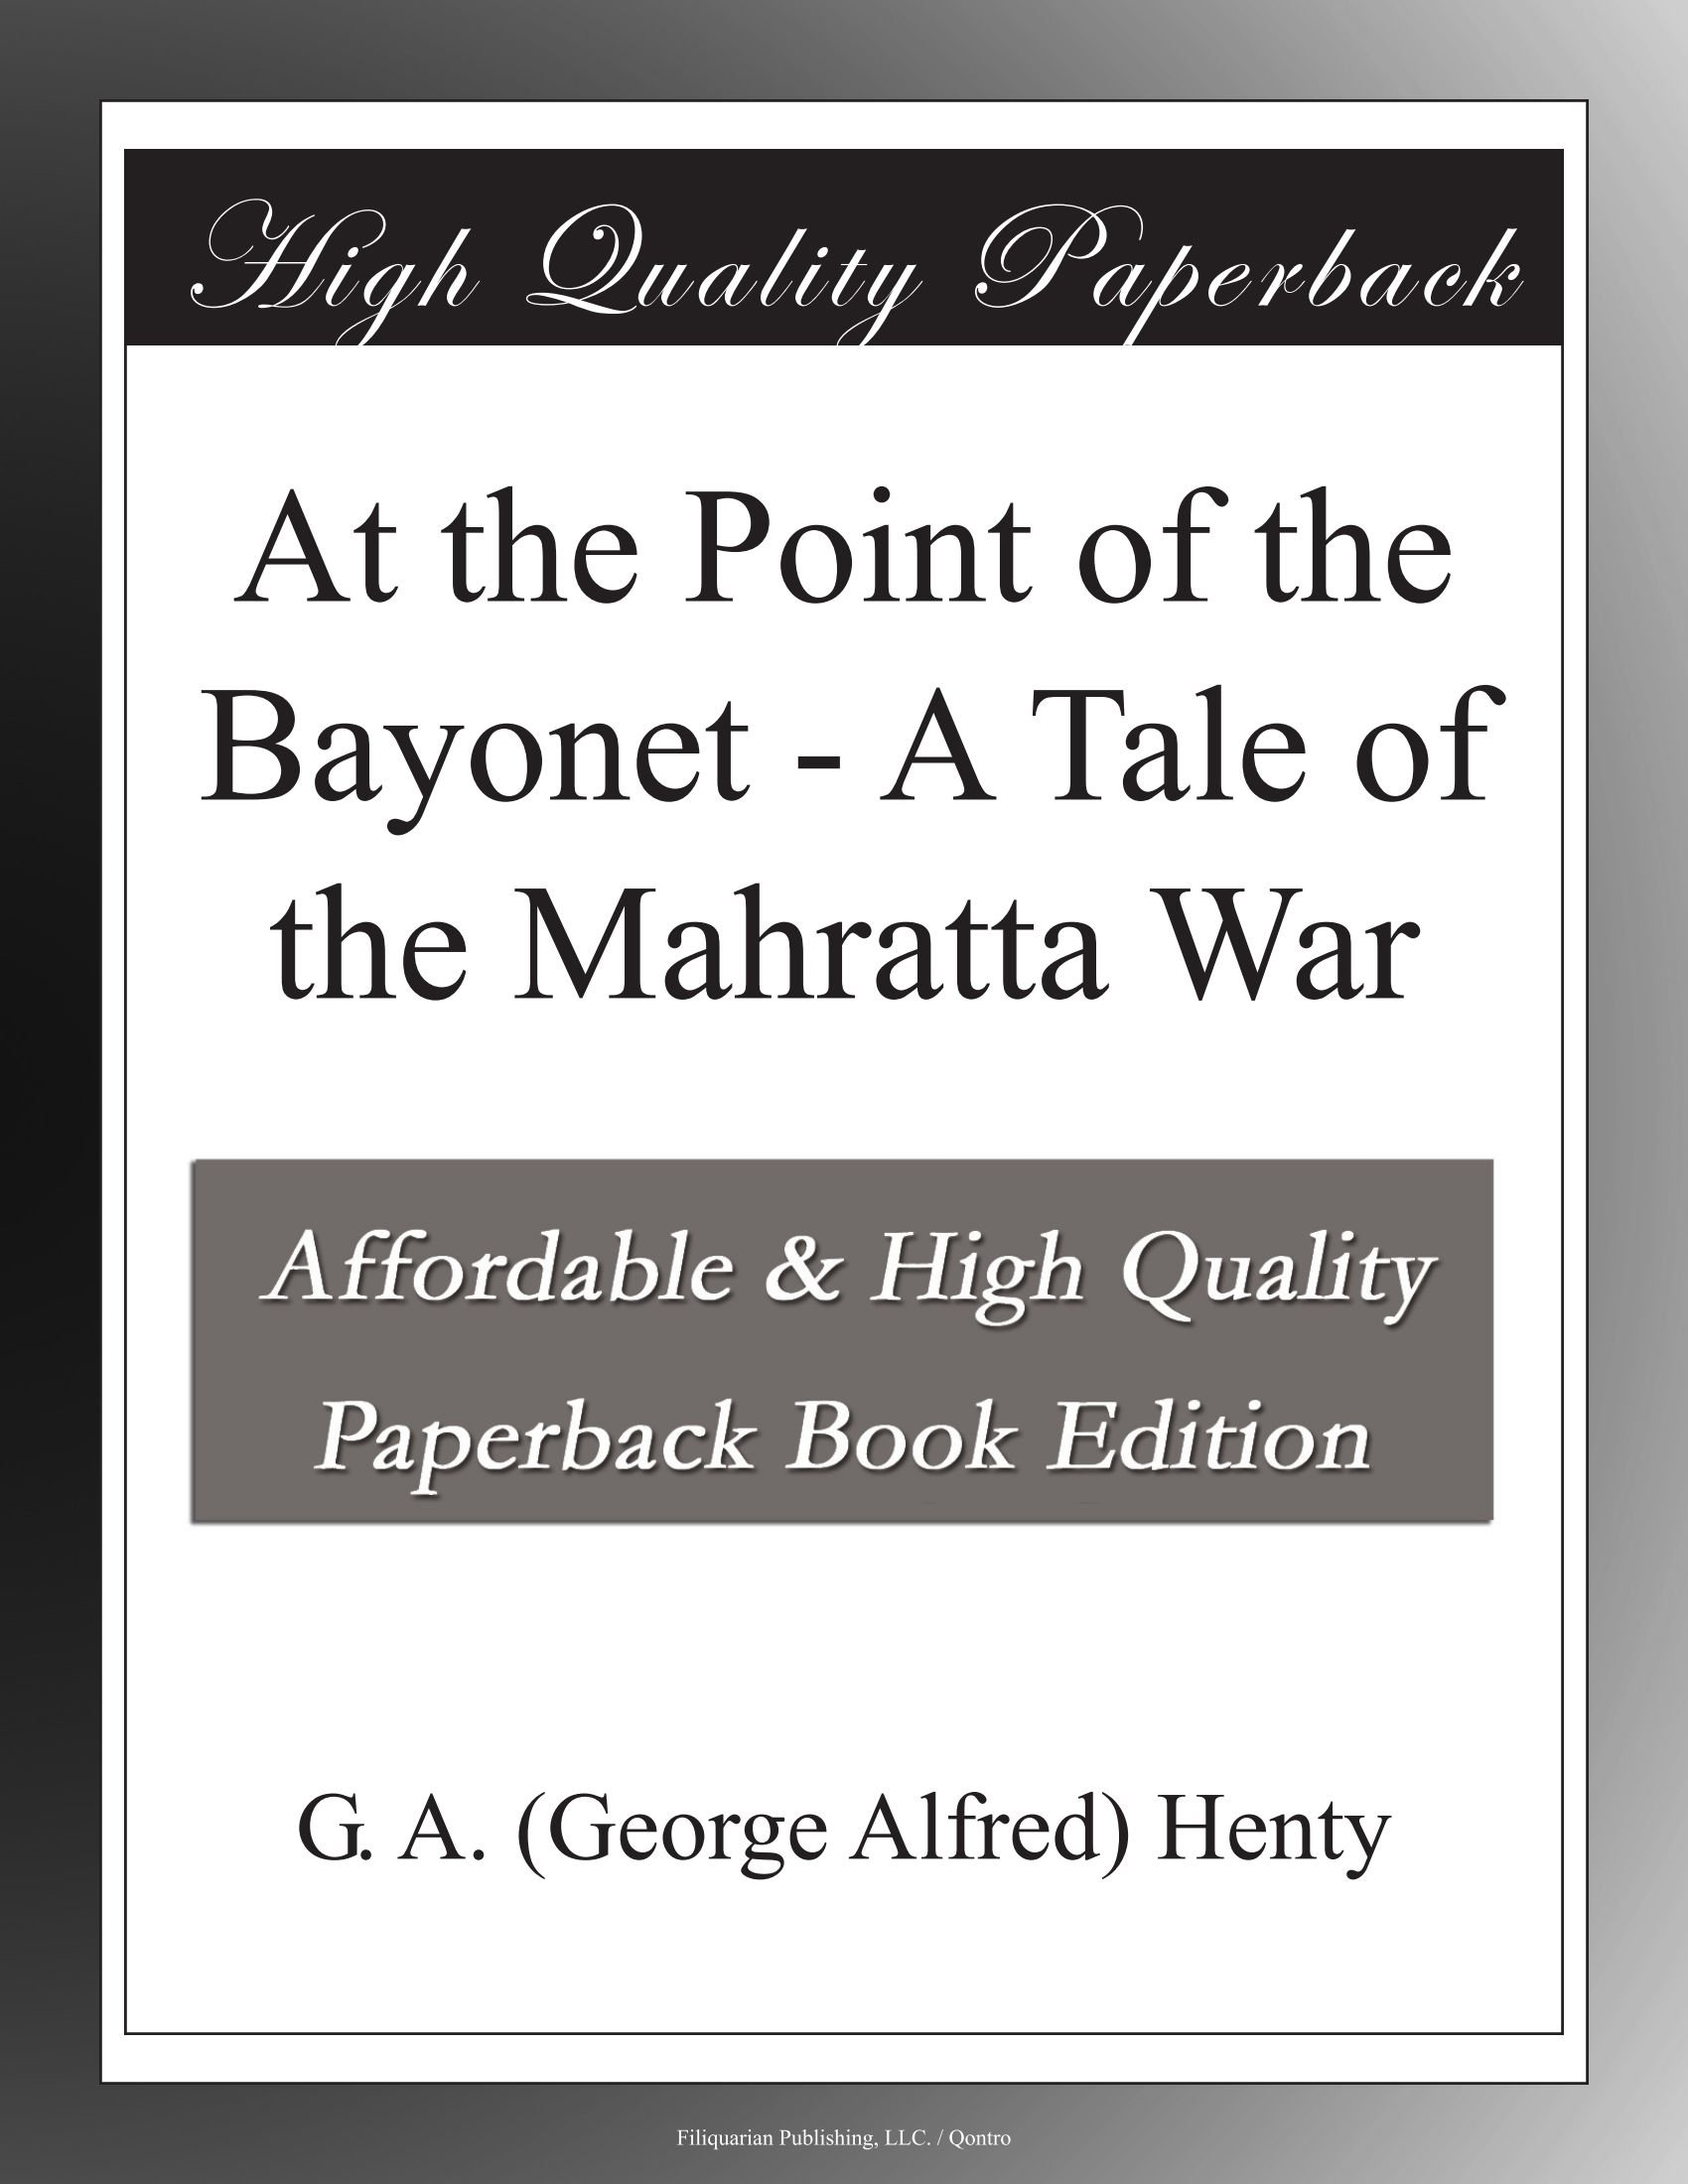 At the Point of the Bayonet - A Tale of the Mahratta War pdf